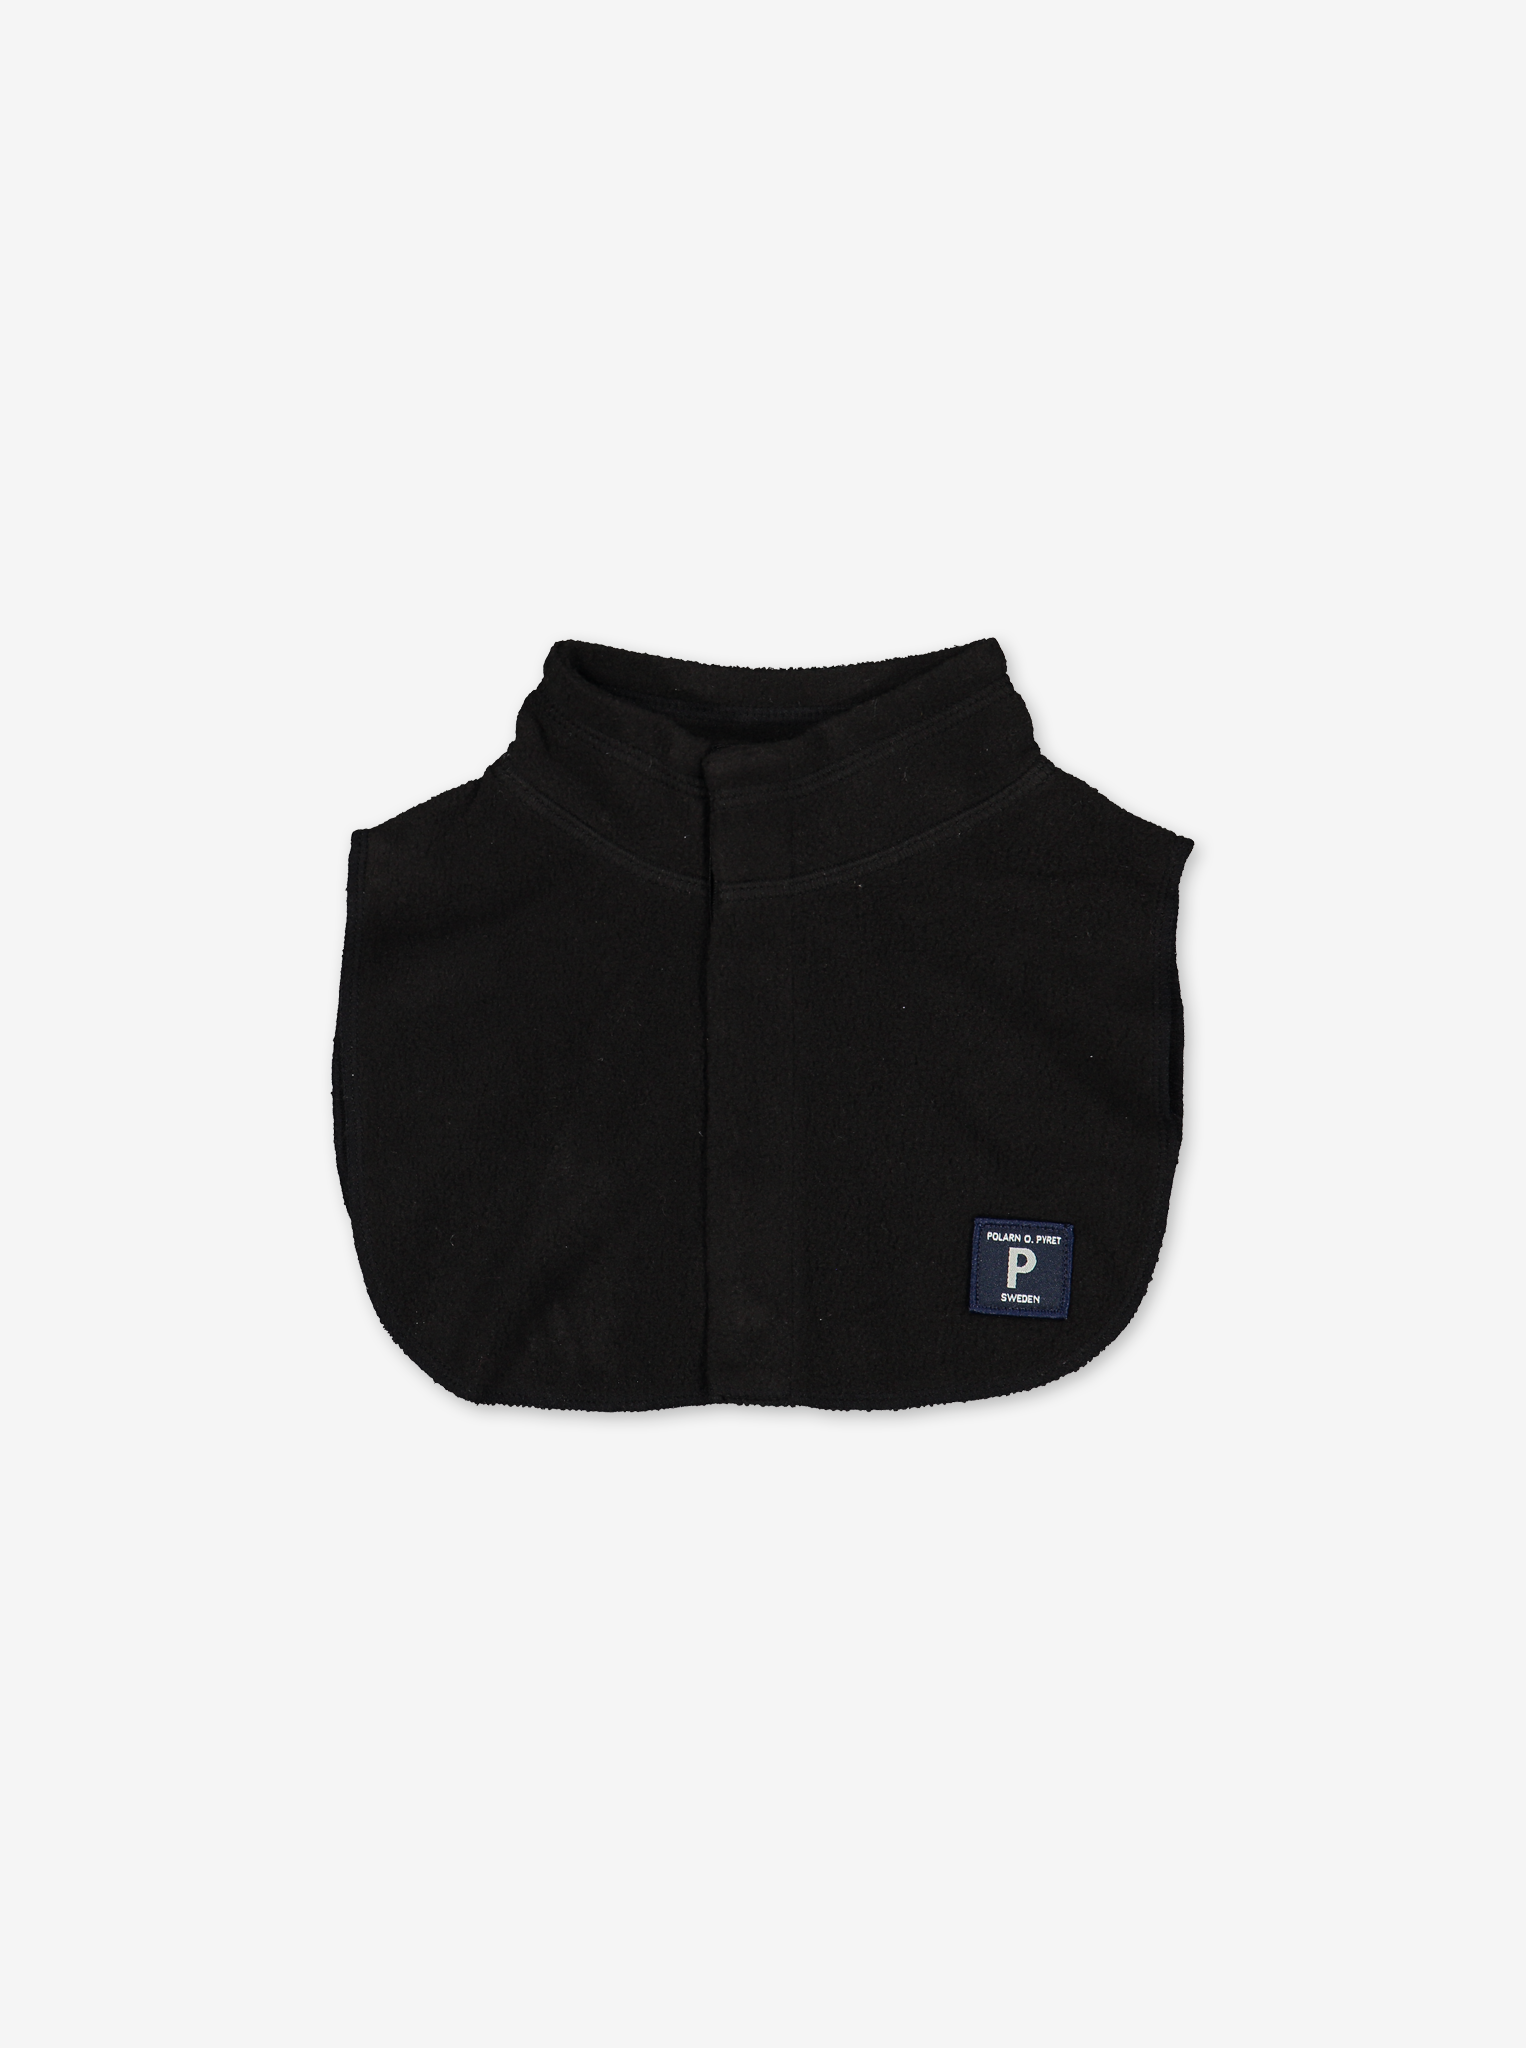 Kids Fleece Neck Warmer---Black---Unisex---2-12y